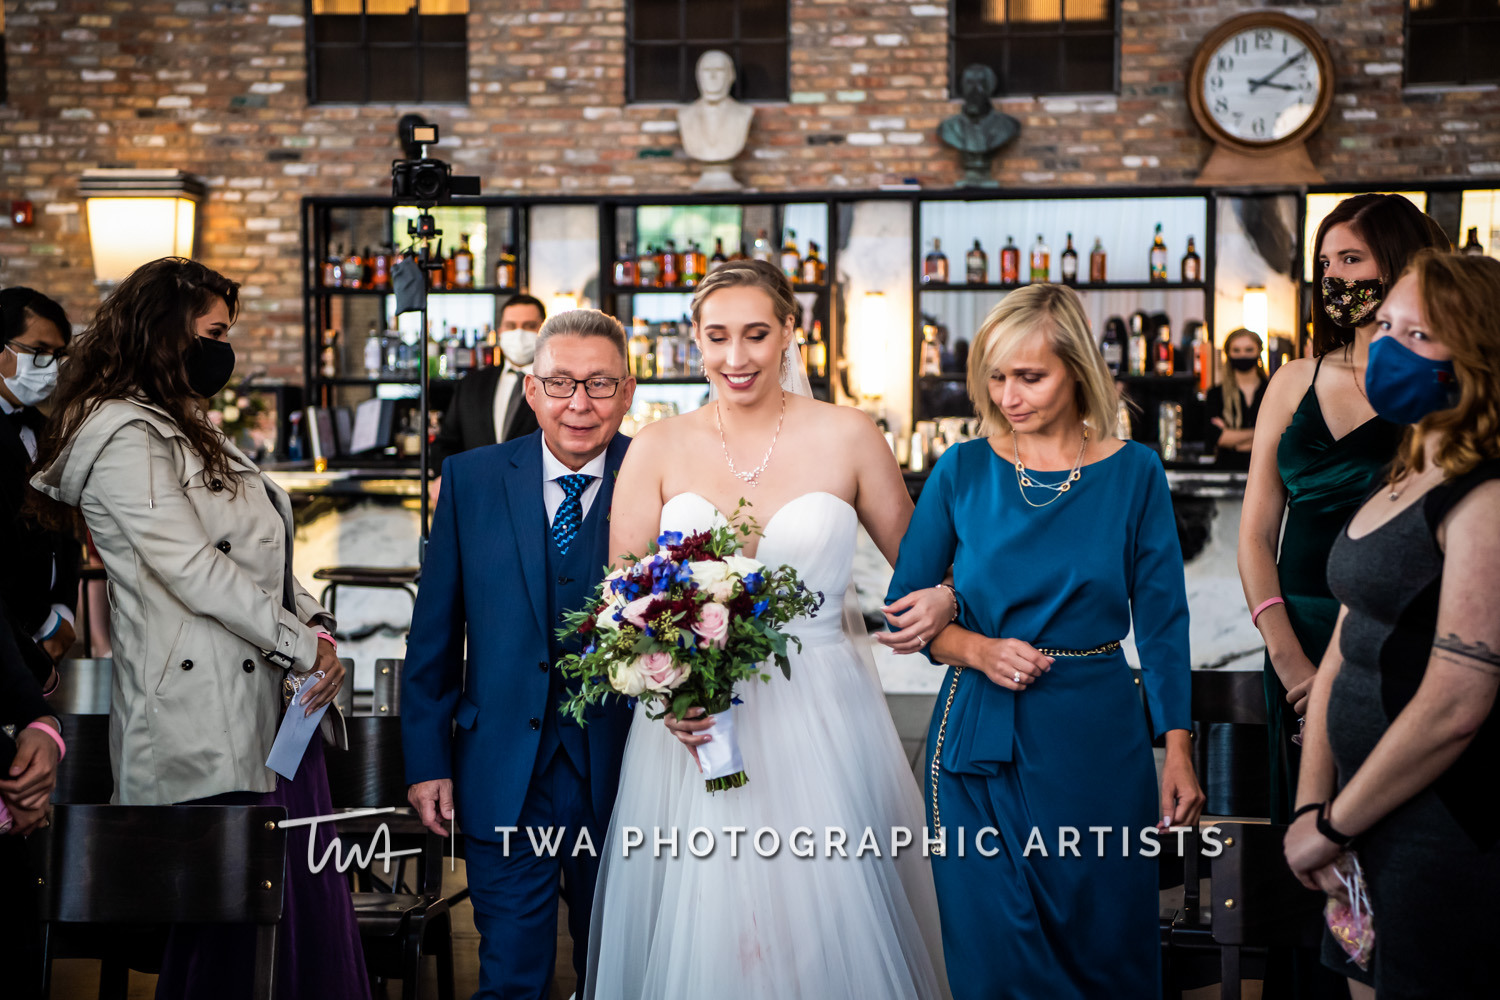 Chicago-Wedding-Photographer-TWA-Photographic-Artists-City-Hall-Event_Masterova_Alkhateeb_AA-0358